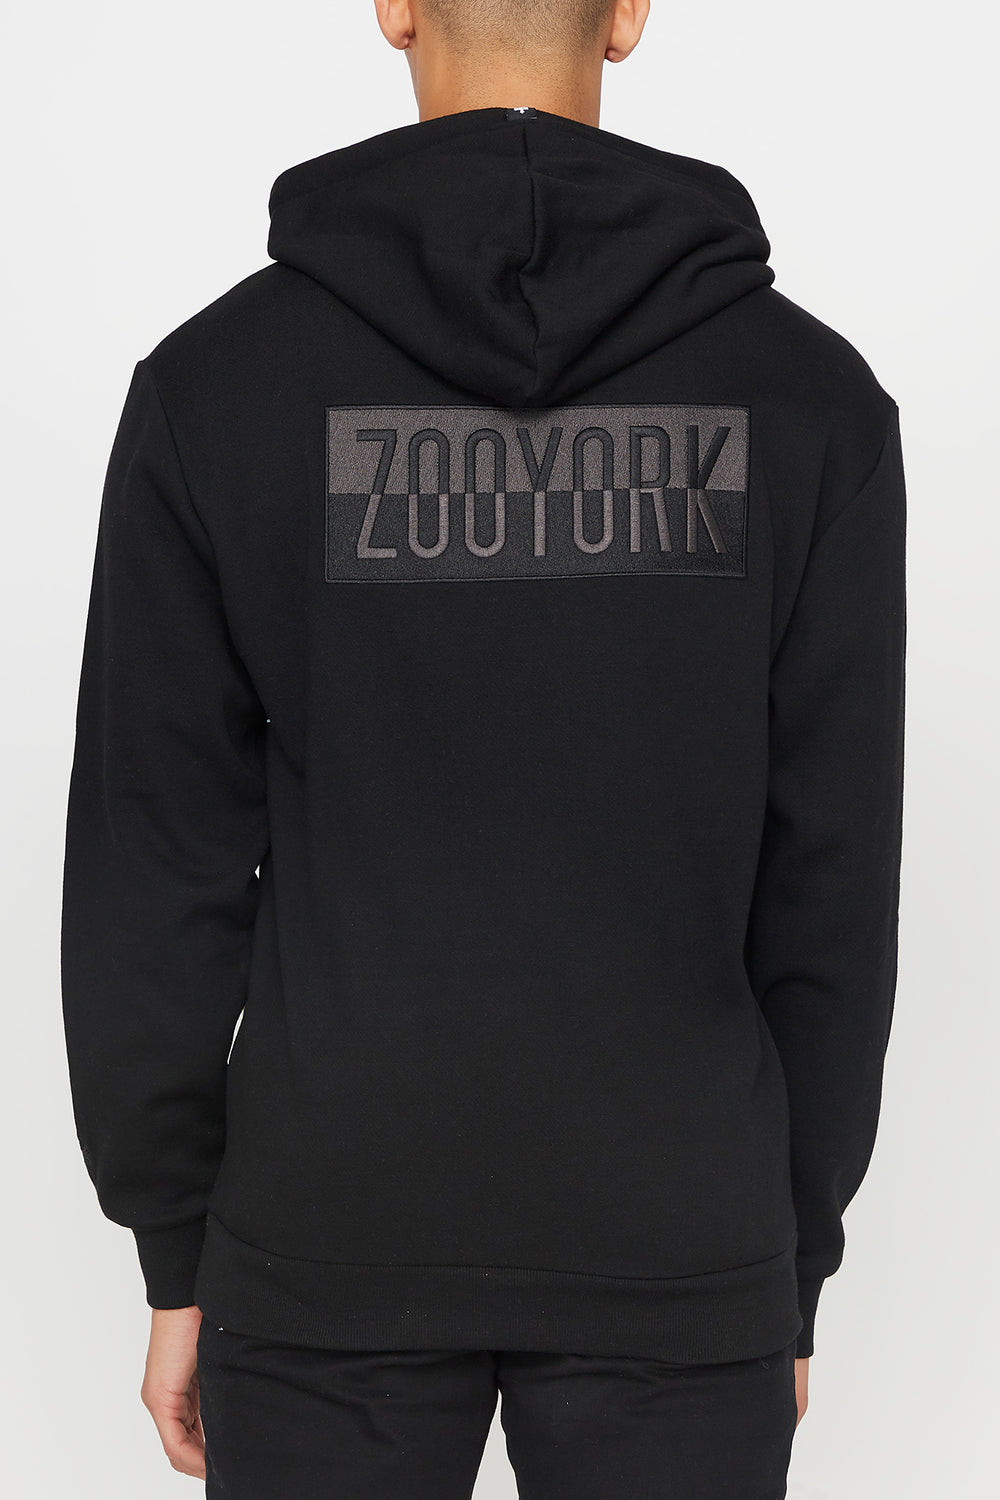 Zoo York Mens Two Tone Box Logo Hoodie Black